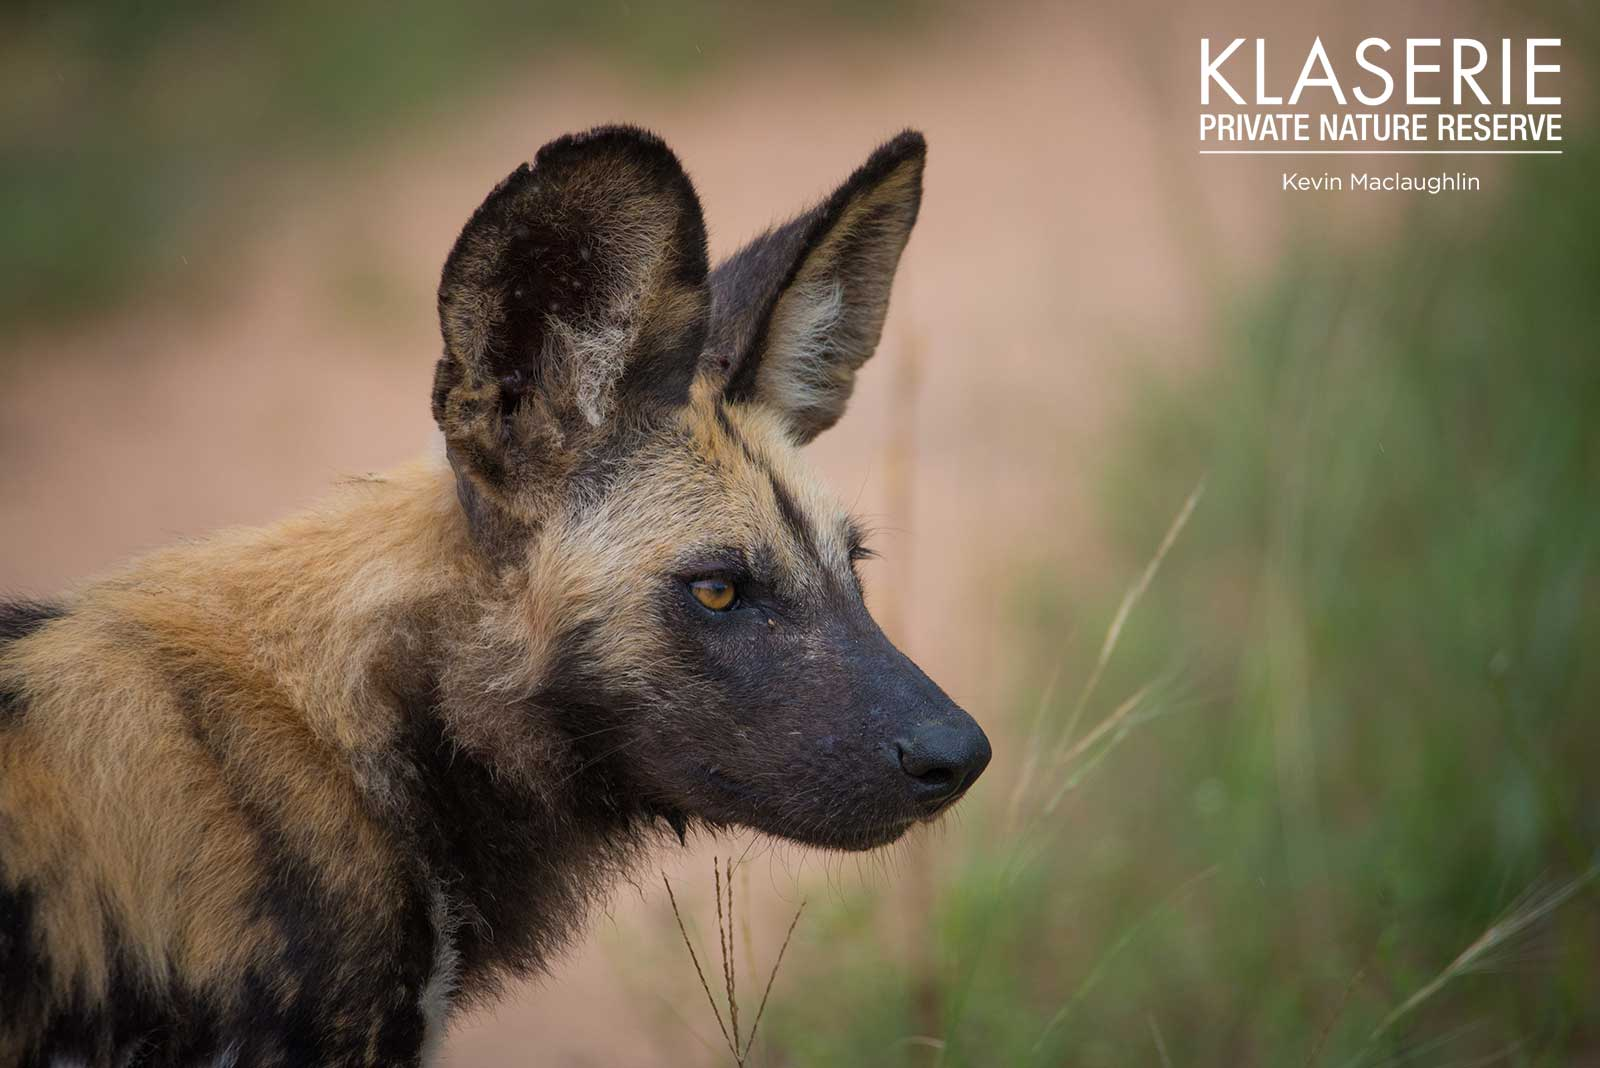 Wild Dogs in Klaserie Private Nature Reserve